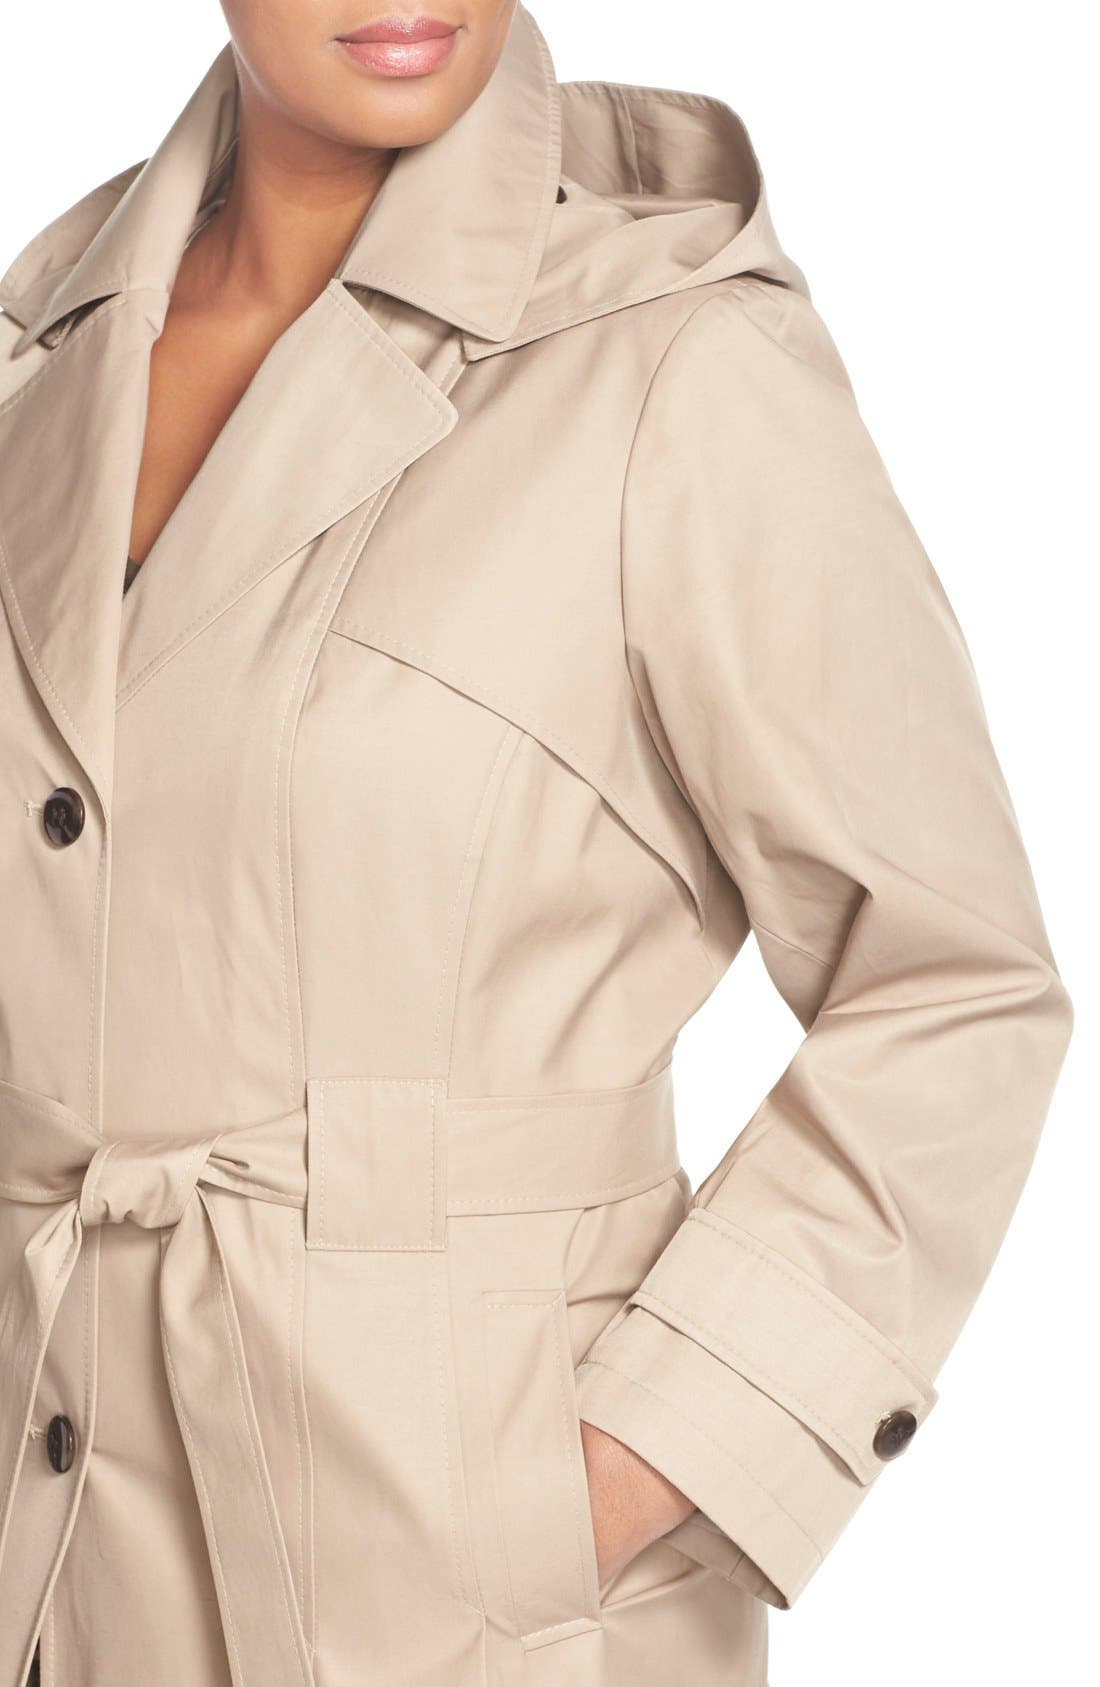 'Scarpa' Single Breasted Trench Coat,                             Alternate thumbnail 20, color,